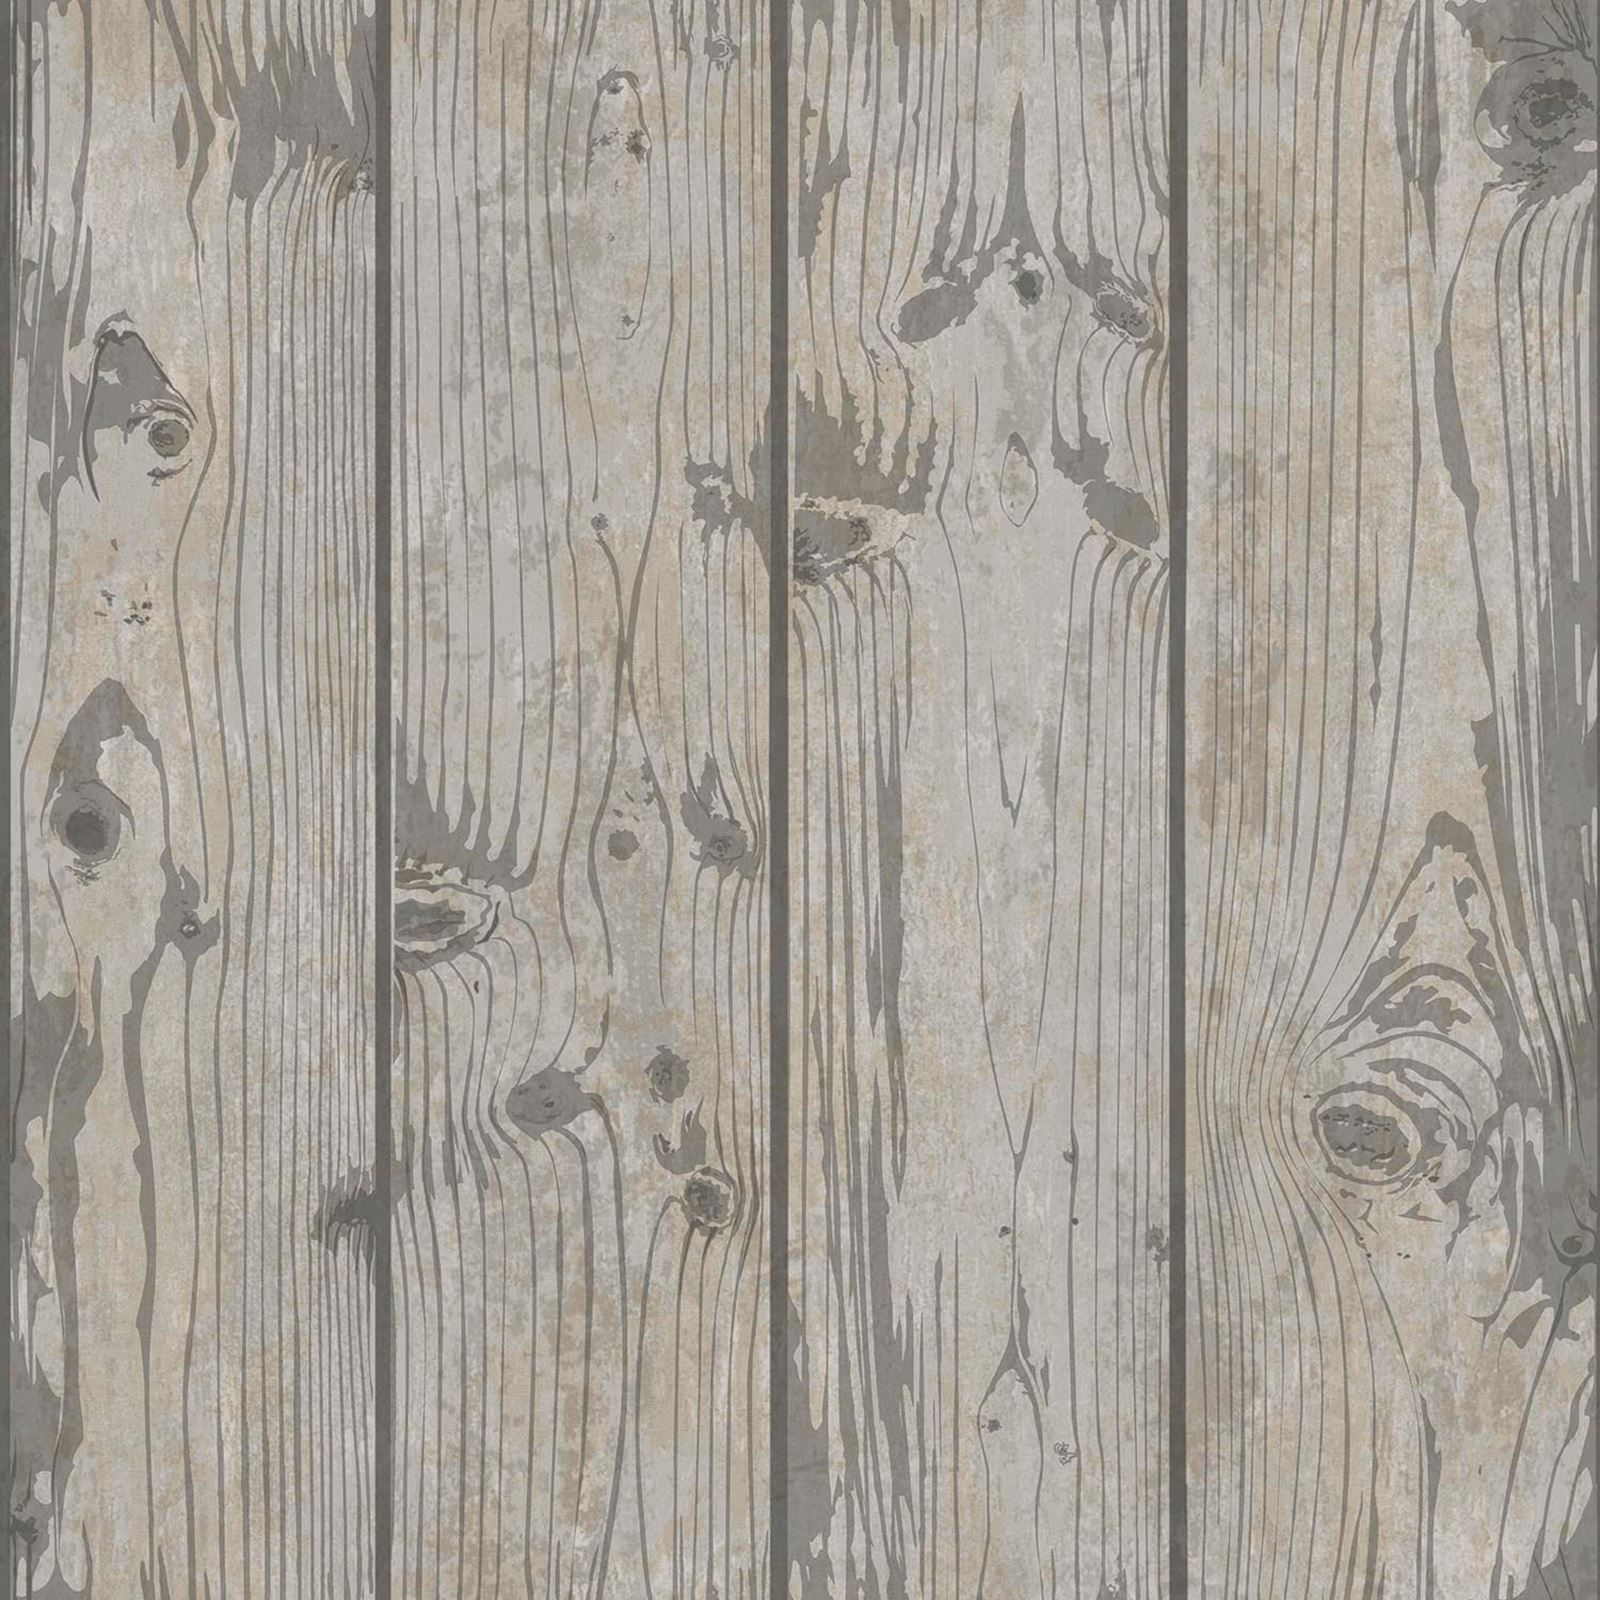 I Love Wallpaper Wood Effect : WOODEN EFFEcT WALLPAPER - RUSTIc WOOD PANELS cHOPPED LOGS PLANKS MAIL BOXES eBay